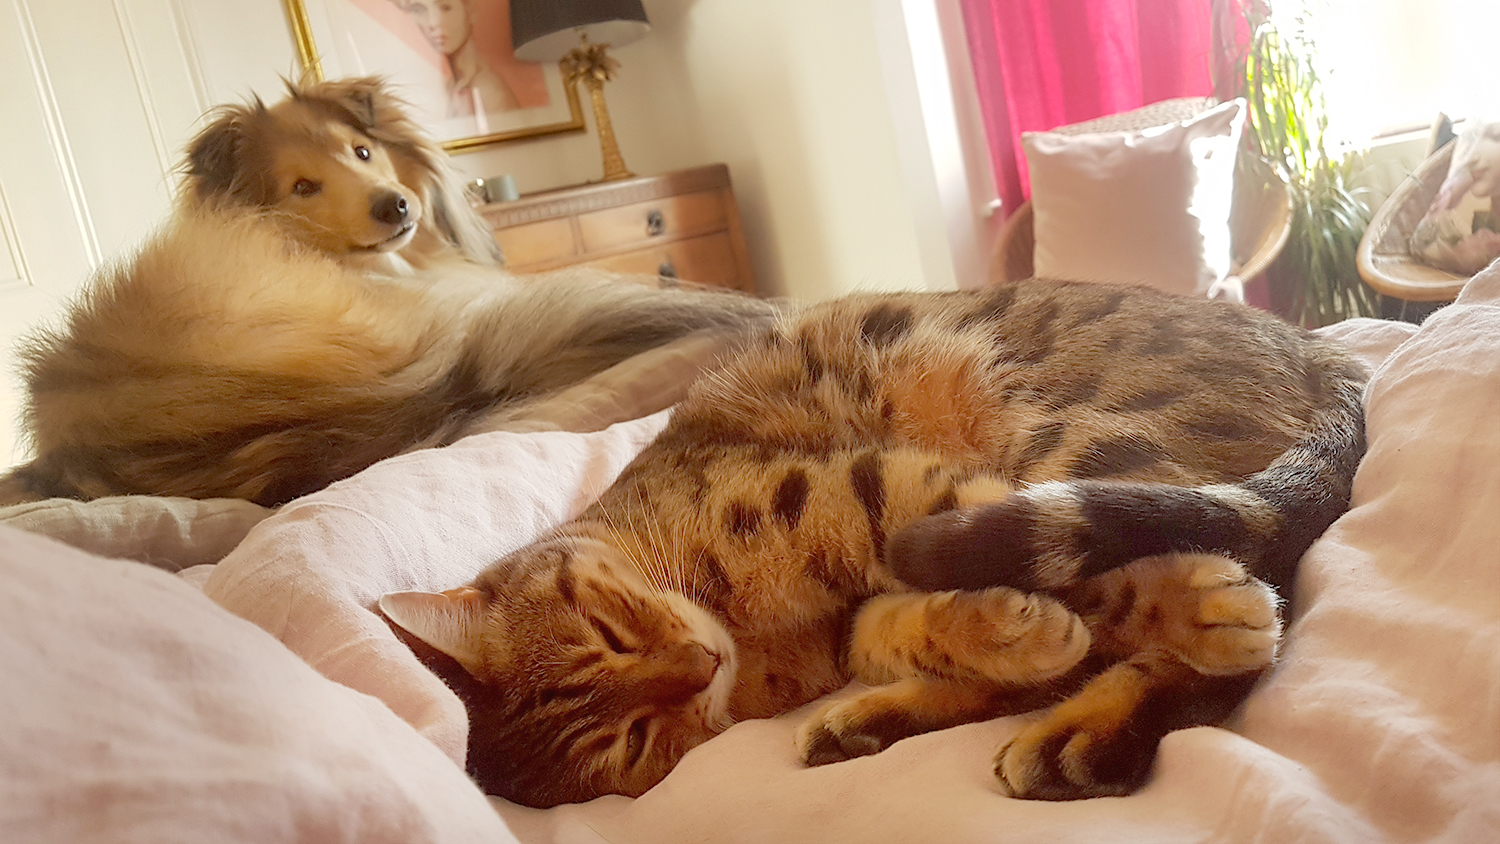 Bengal and Sheltie sleeping together on a bed